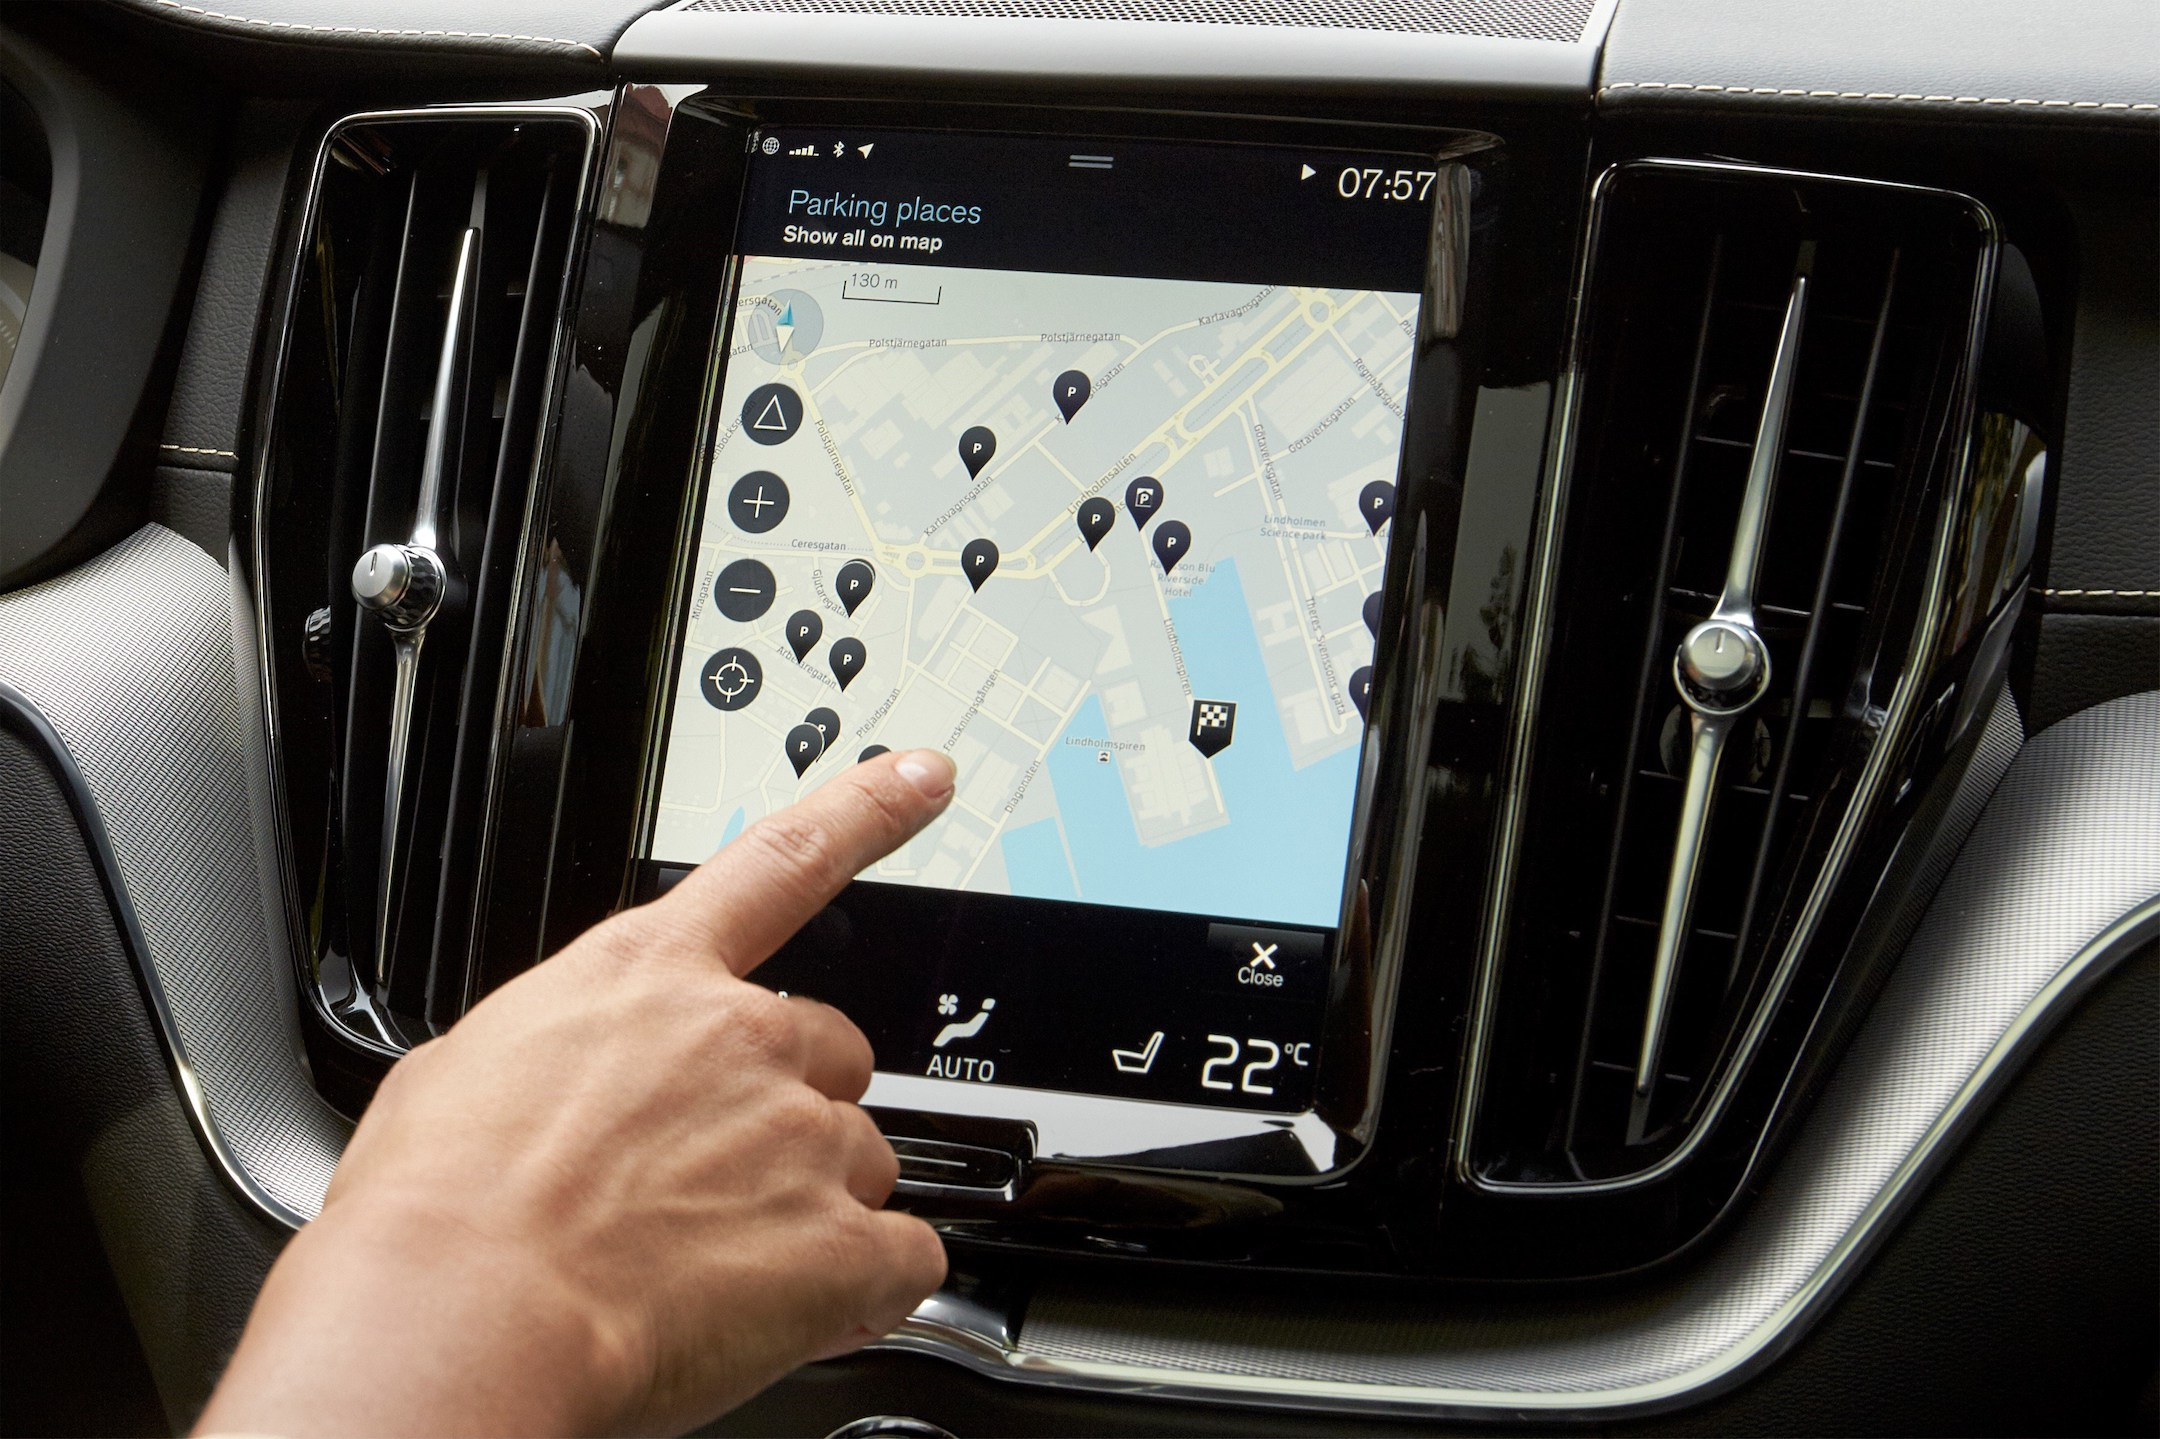 Park and Pay application in the Volvo XC60